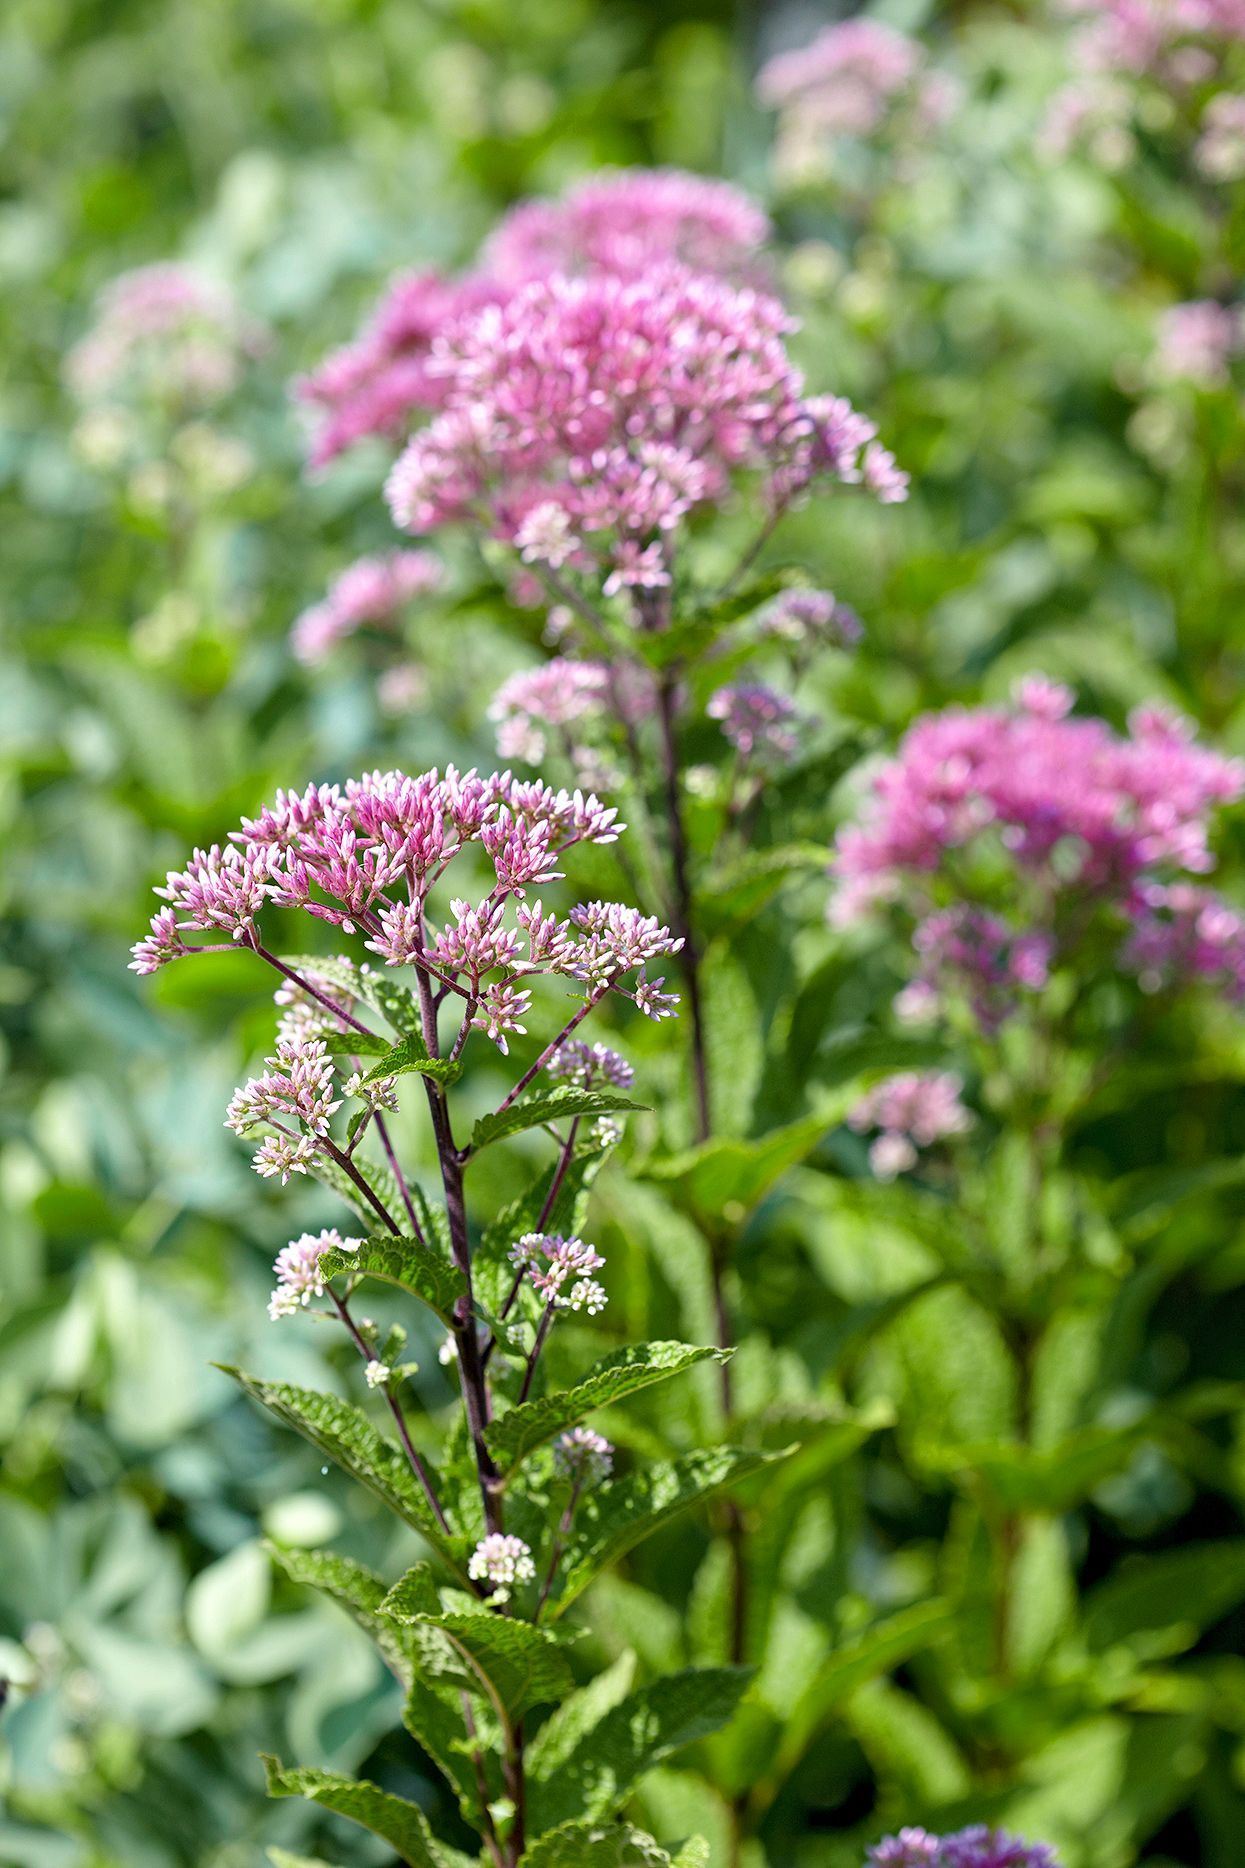 A big, bold native perennial, Joe Pye weed will quickly fill sunny spots in your landscape. It's a reliable fall bloomer, developing rounded heads of pinkish purple flowers that will attract scores of colorful butterflies. #gardening #gardenideas #perennialtips #perennialflowers #perennialgarden #easytogrow #bhg